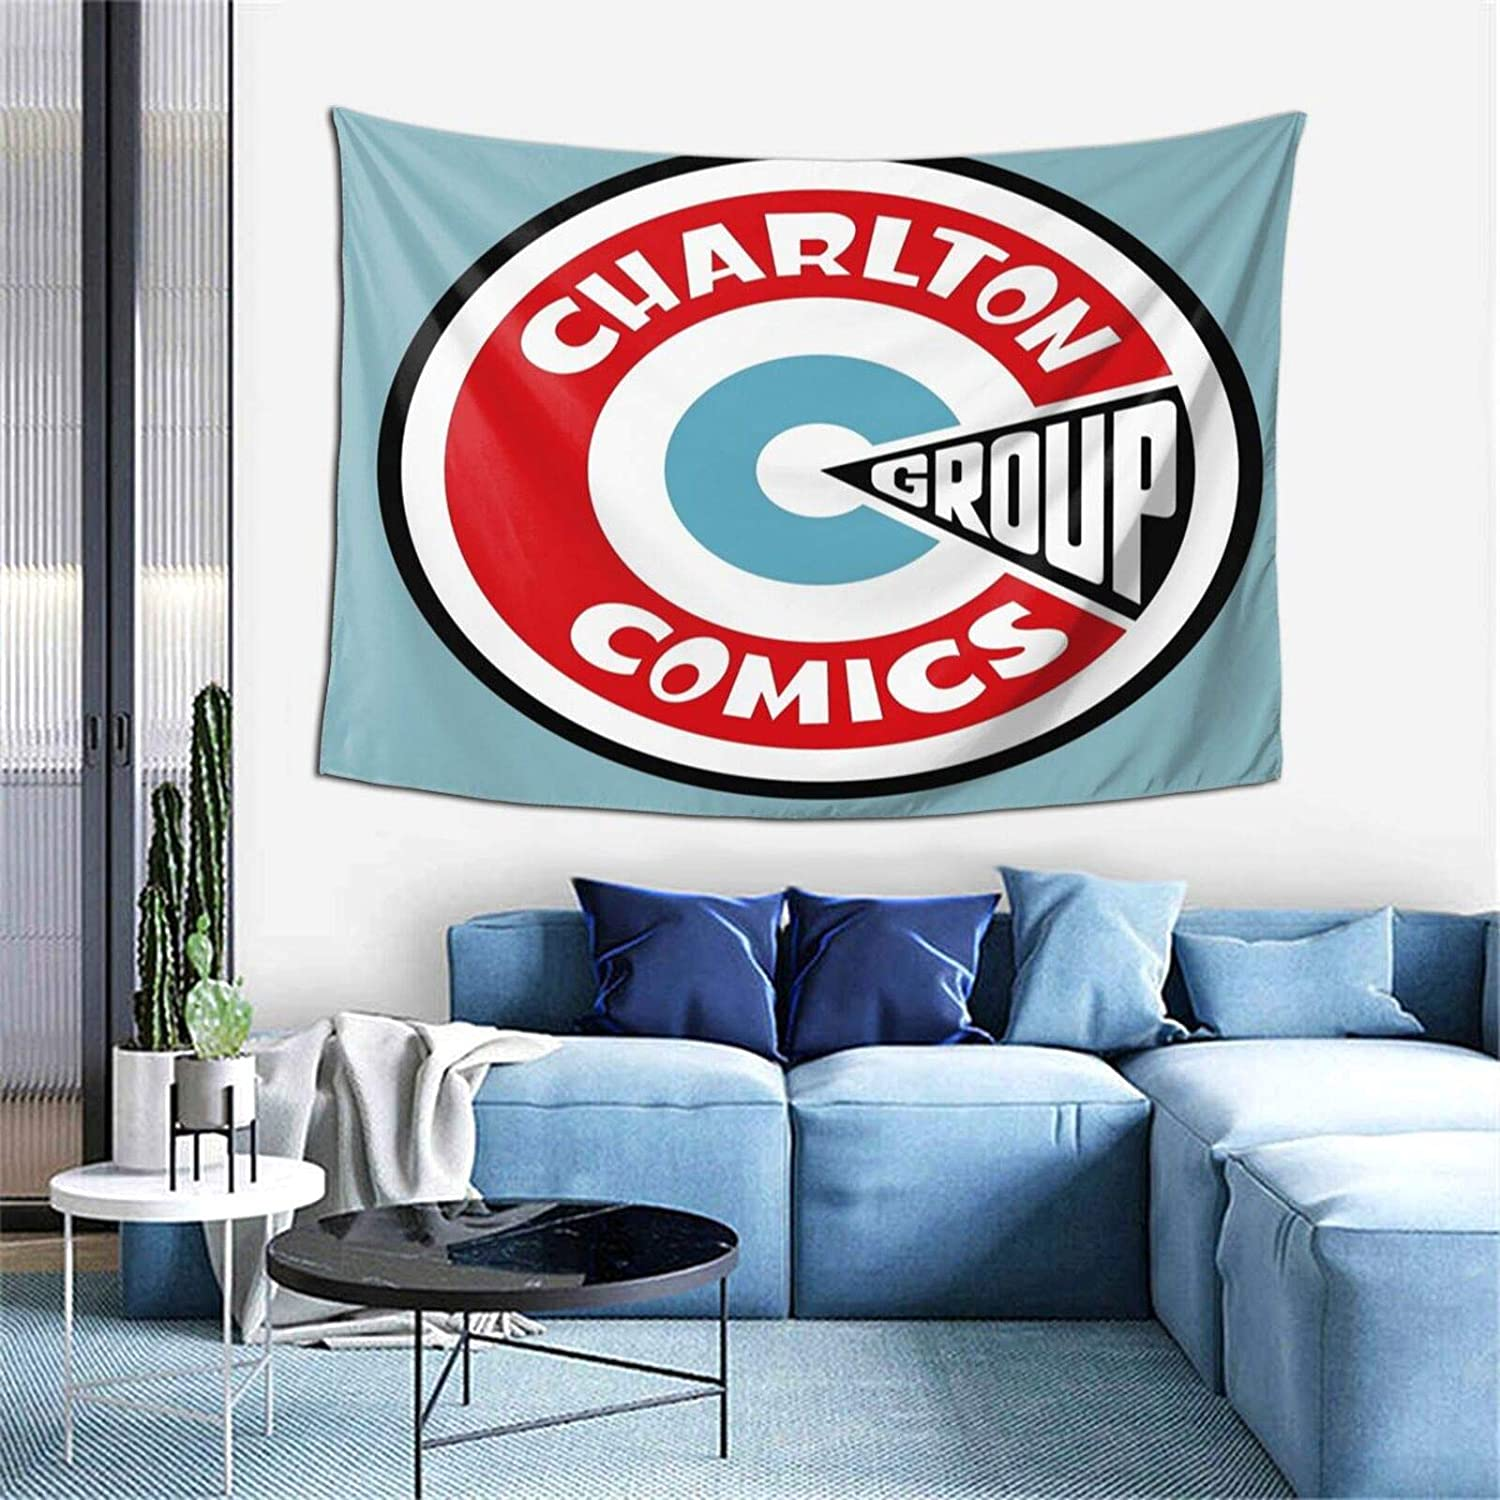 Charlton Comi Group Wall Tapestry Apestry Album 3D Wall Hanging Art Home Decor Wave Tapestries